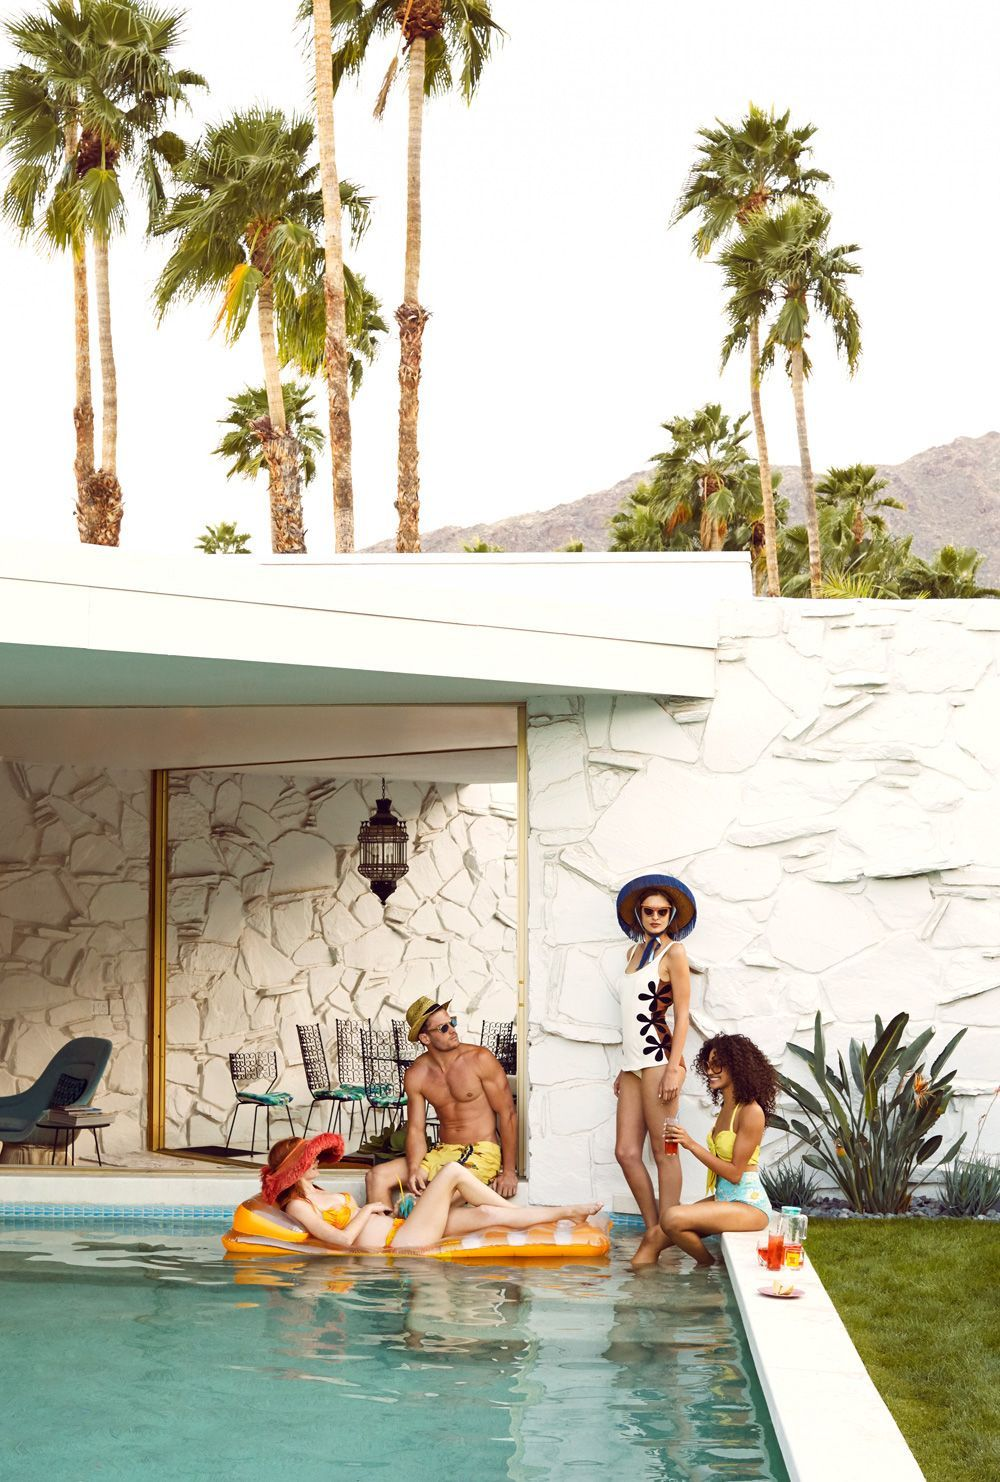 10 Things To Do In Palm Springs That Will Make Great Insta Stories